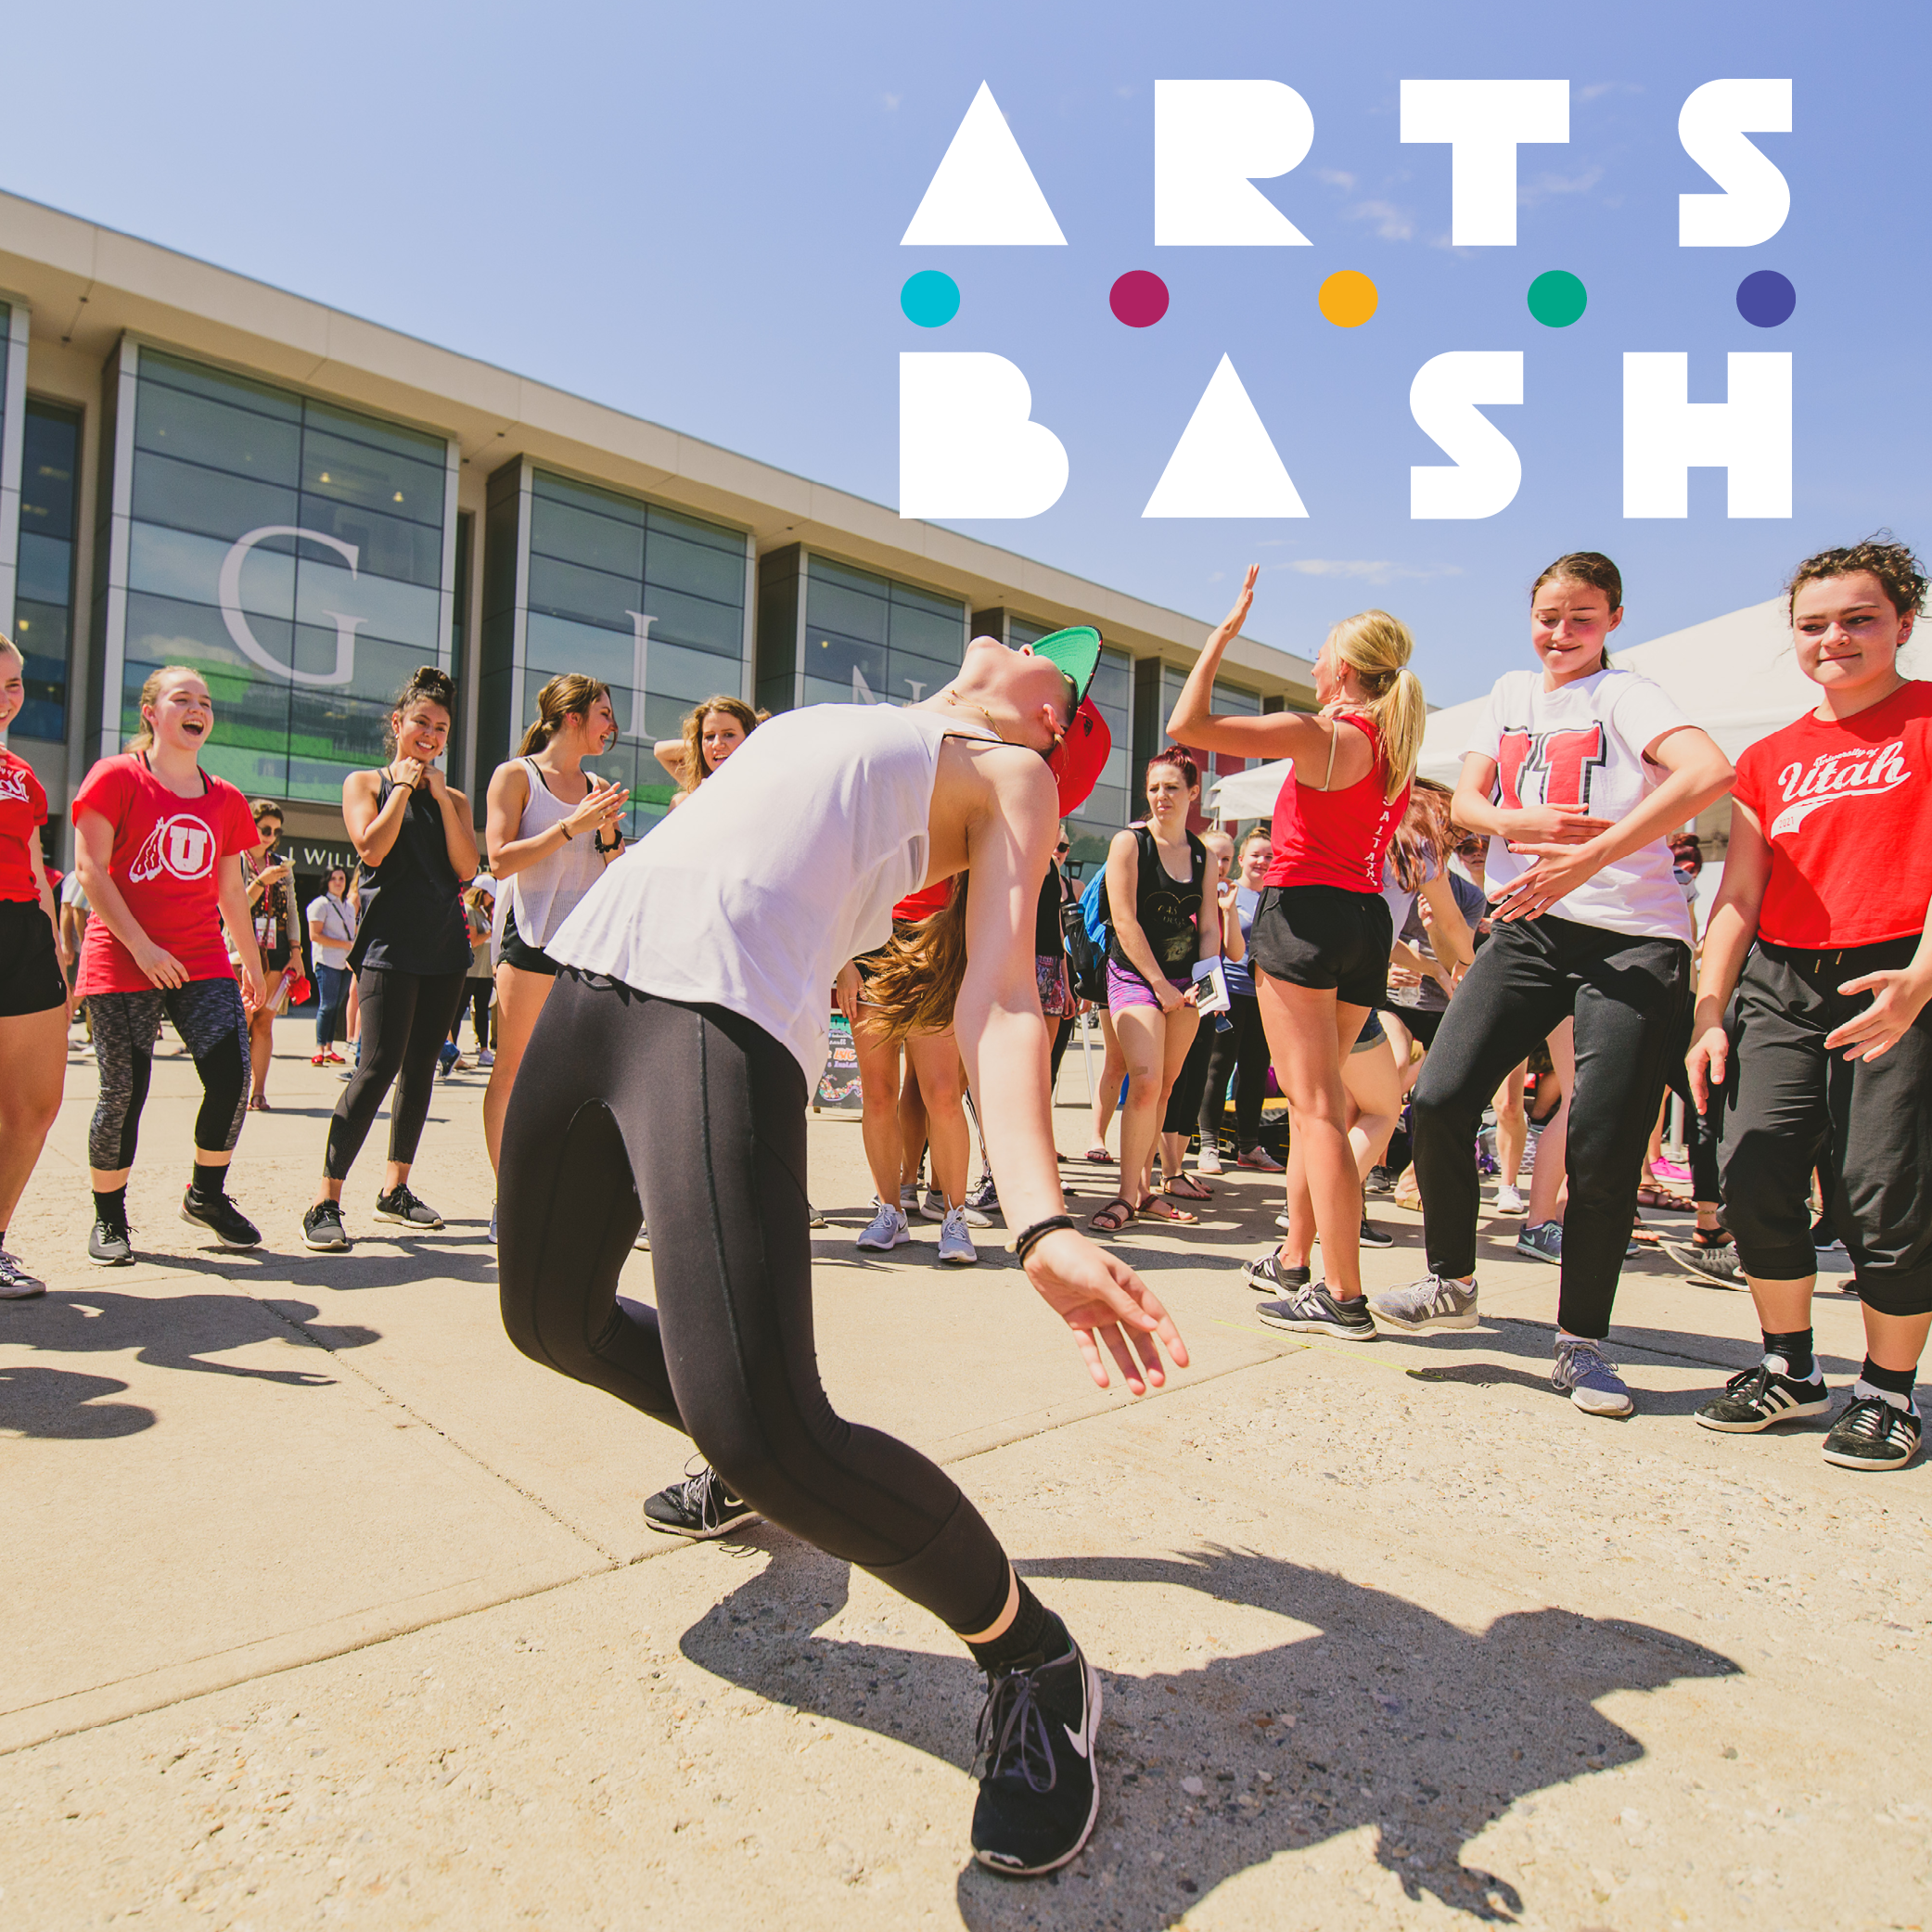 Arts Bash 2019 square